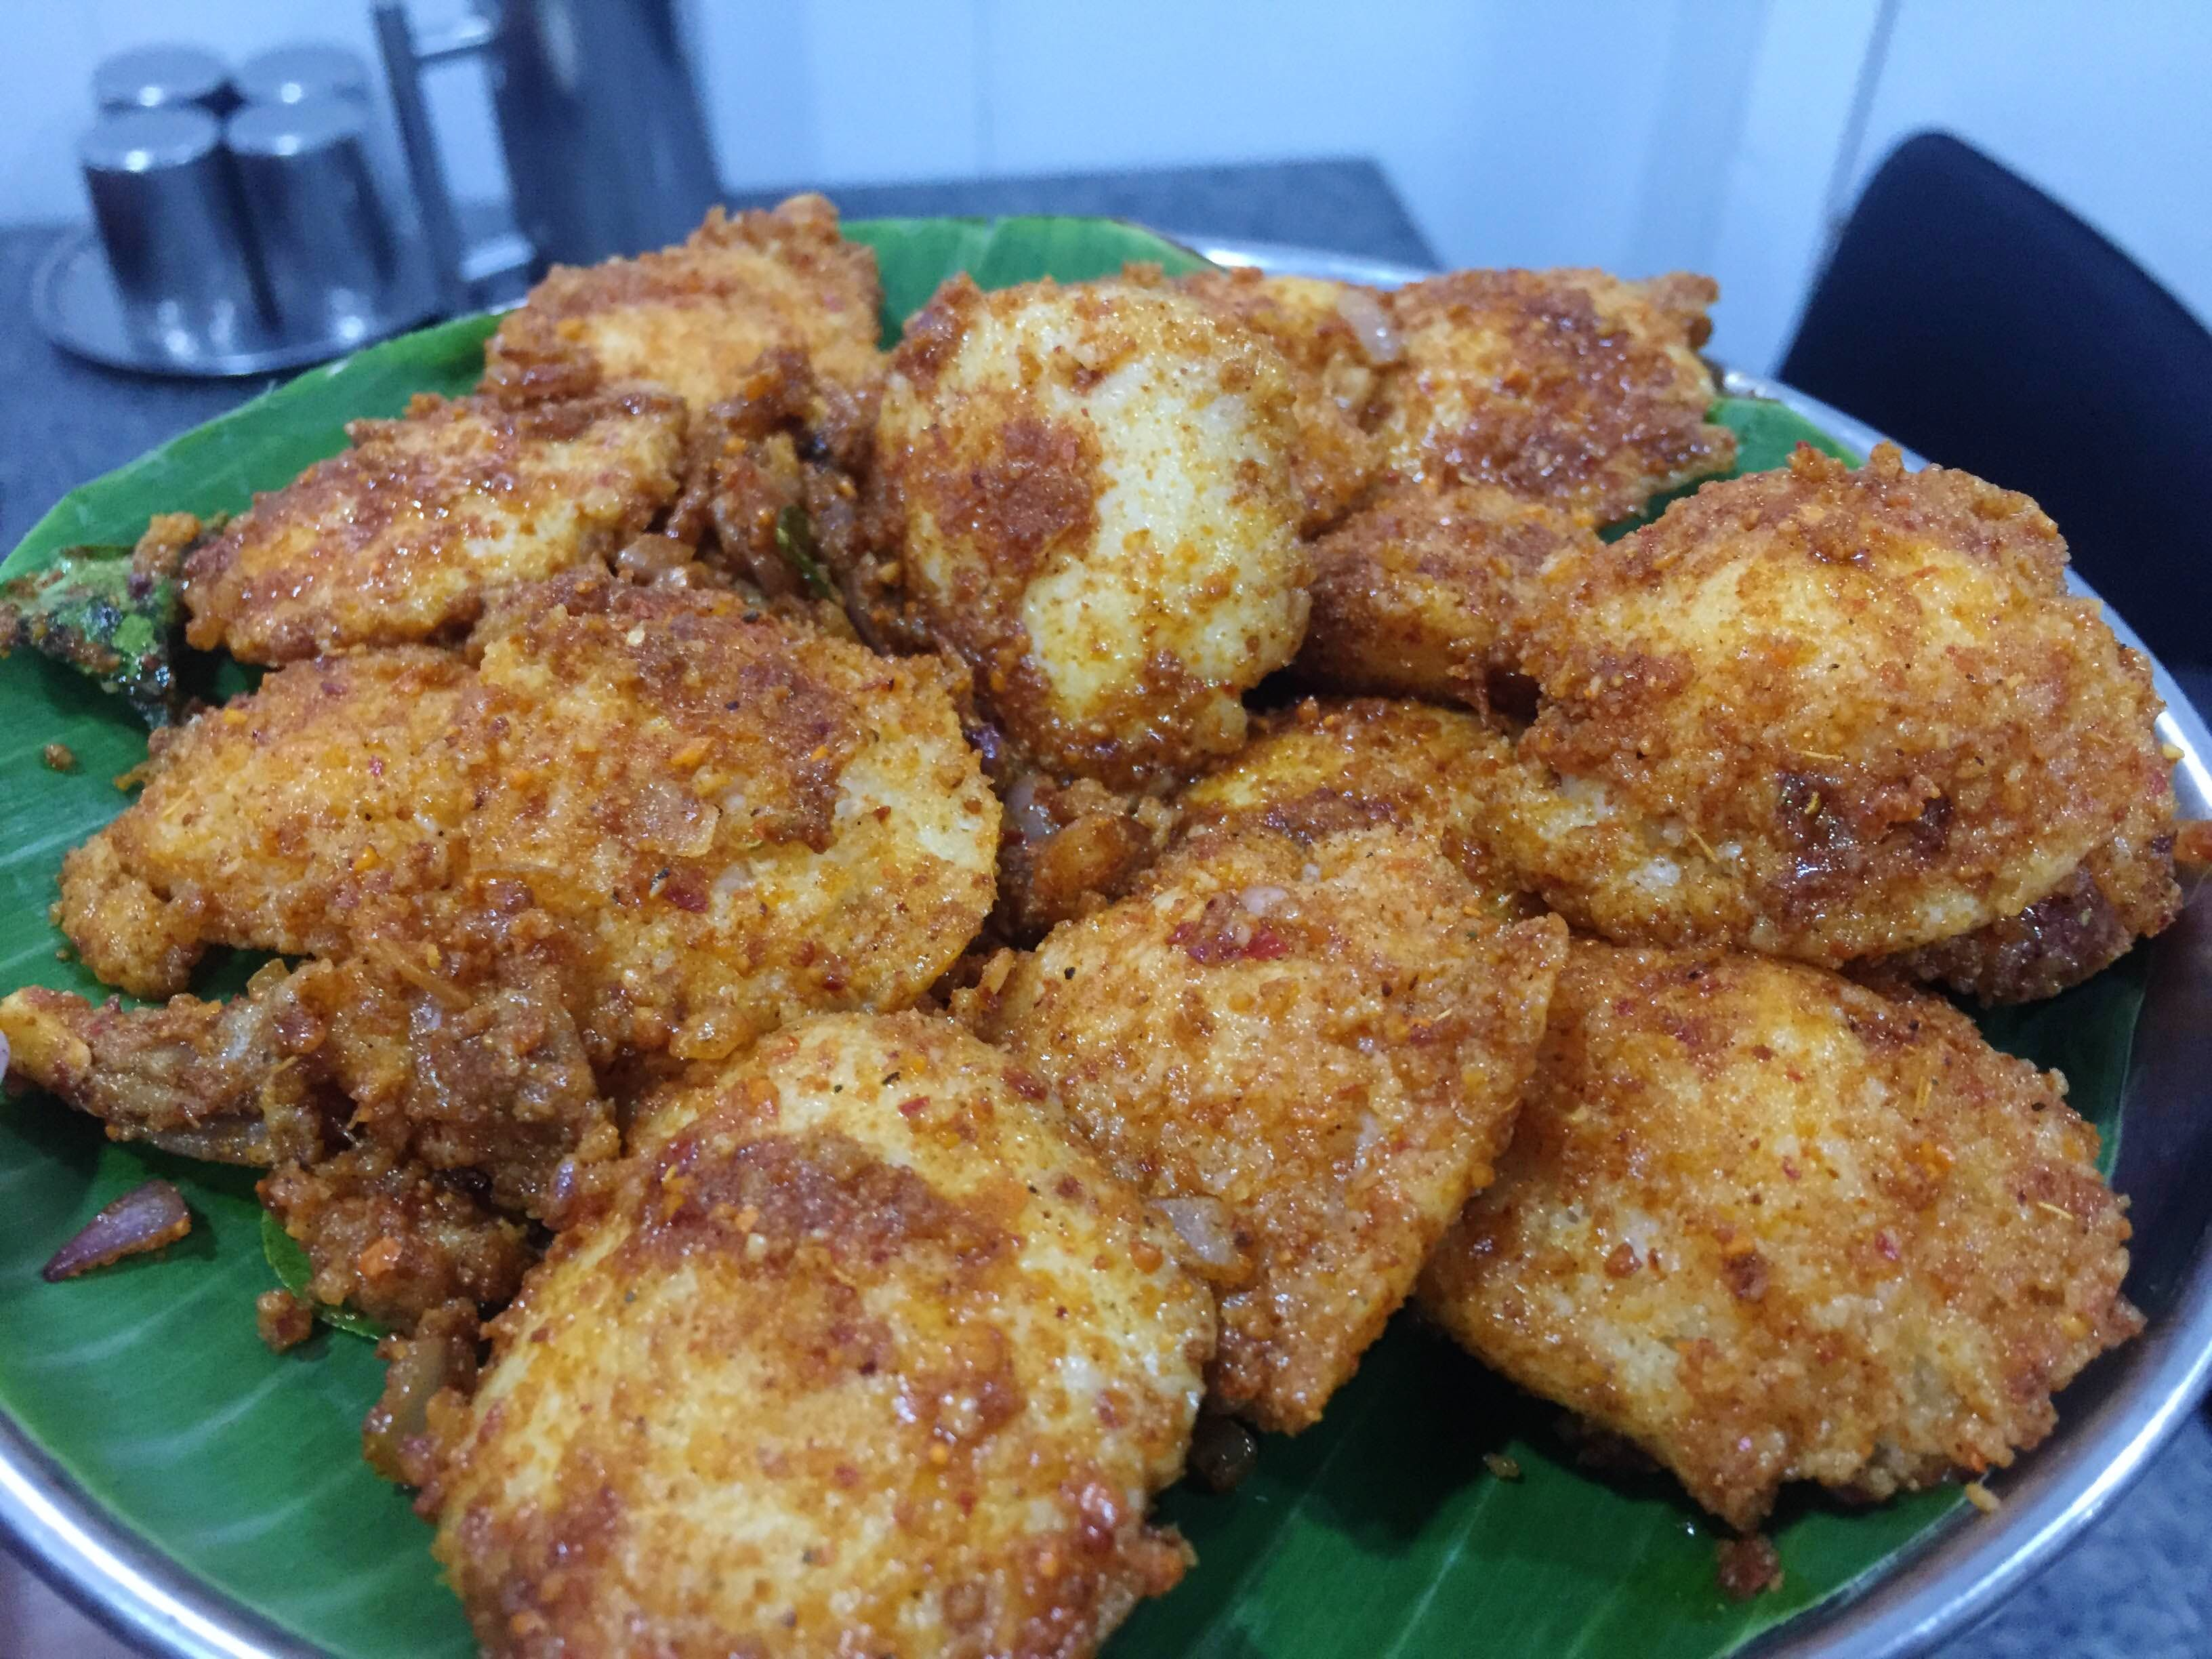 Dish,Food,Cuisine,Fried food,Deep frying,Karaage,Ingredient,Pakora,Korokke,Chicken nugget